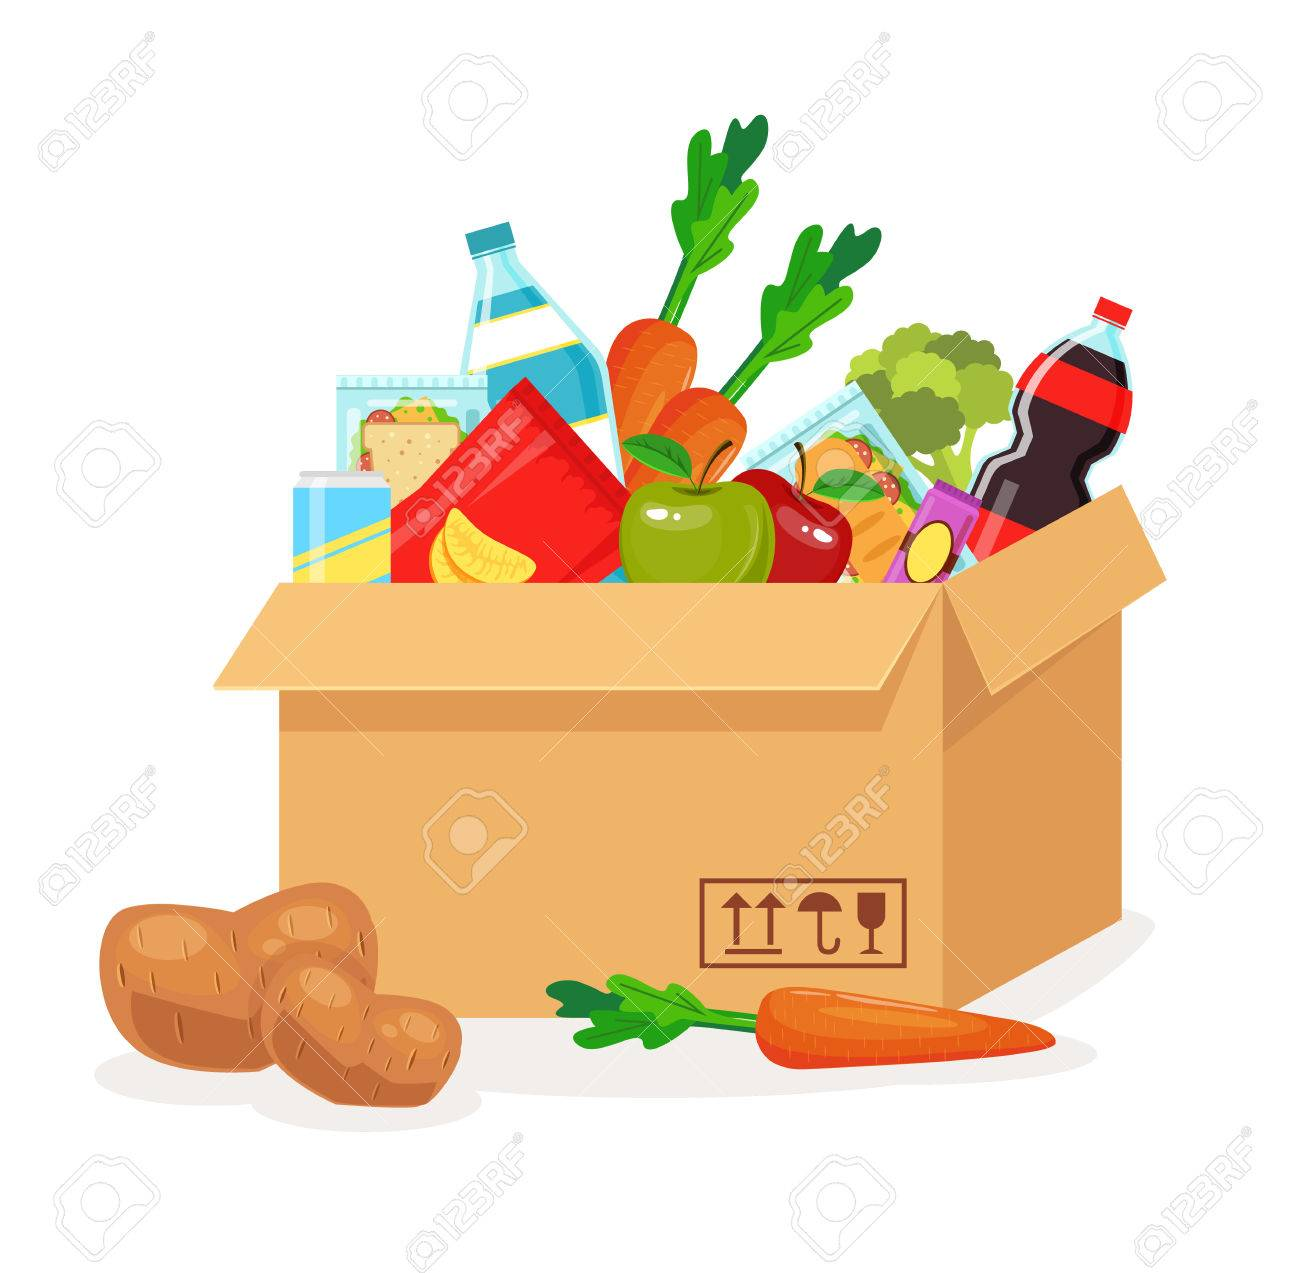 Food in box. Food delivery. Vector flat cartoon illustration - 56975106